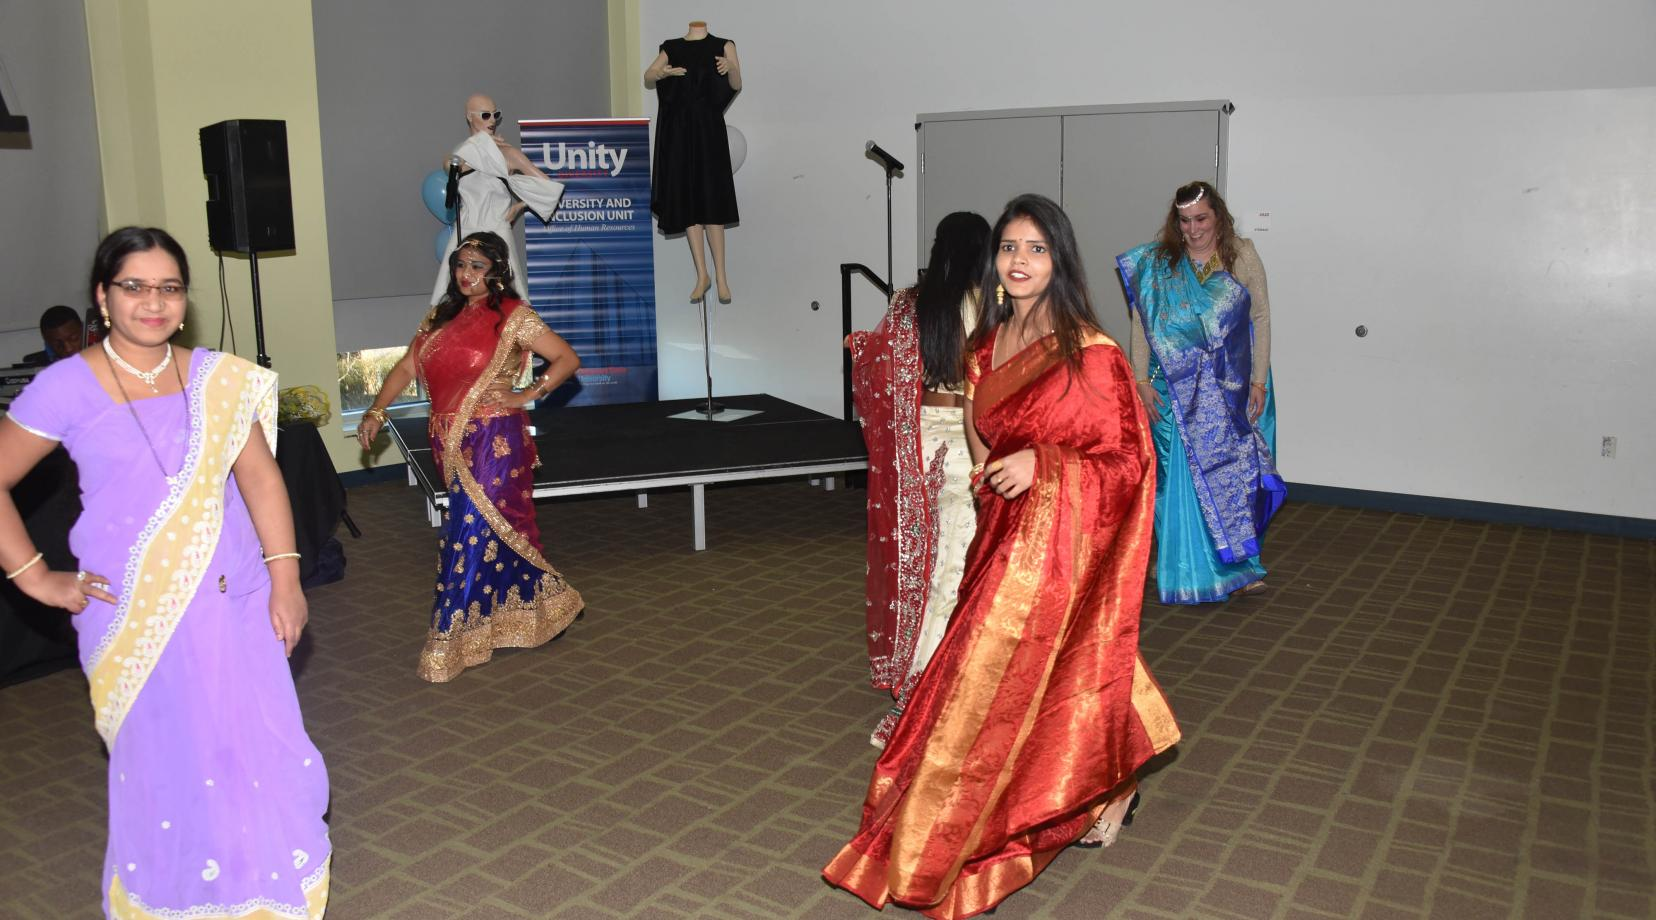 <p>A group of East Indian women performed a dance and fashion presentation during the 2019 Unity Day events in the MLK Jr. Student Center.</p>